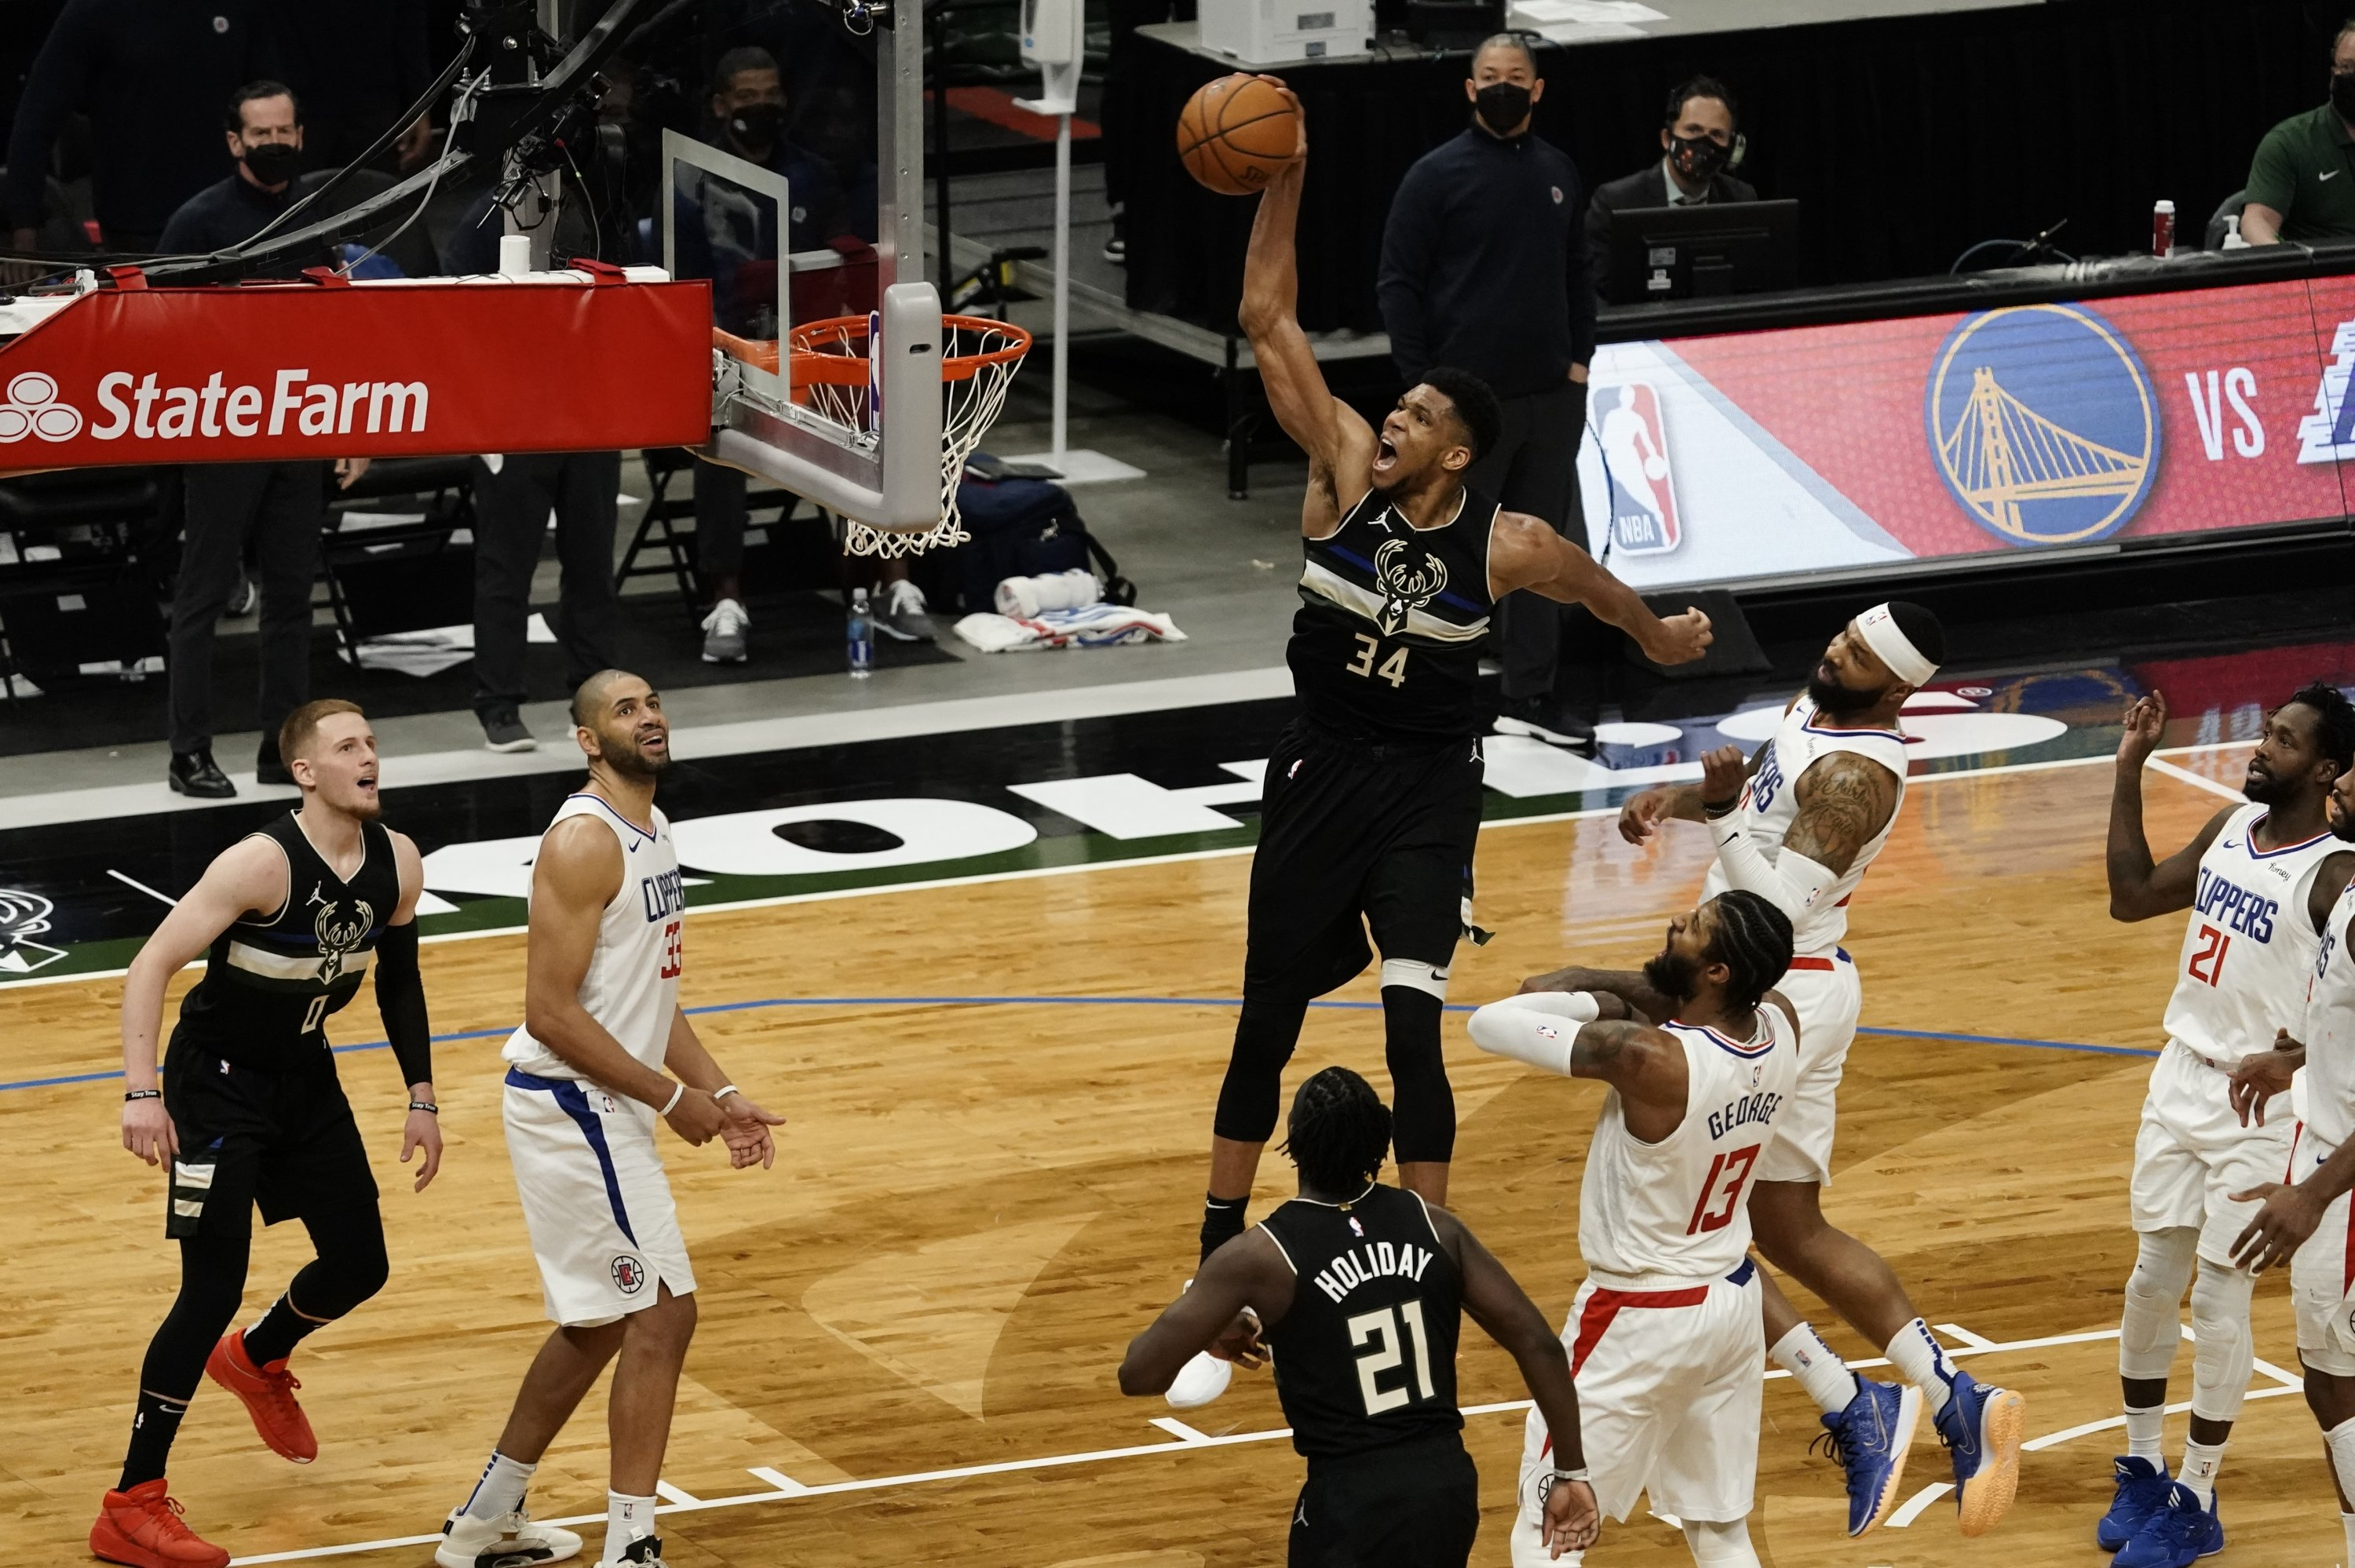 Milwaukee Bucks' Giannis Antetokounmpo (C) dunks during the second half of an NBA basketball game against the LA Clippers, in Milwaukee, Wisconsin, Feb. 28, 2021. (AP Photo)